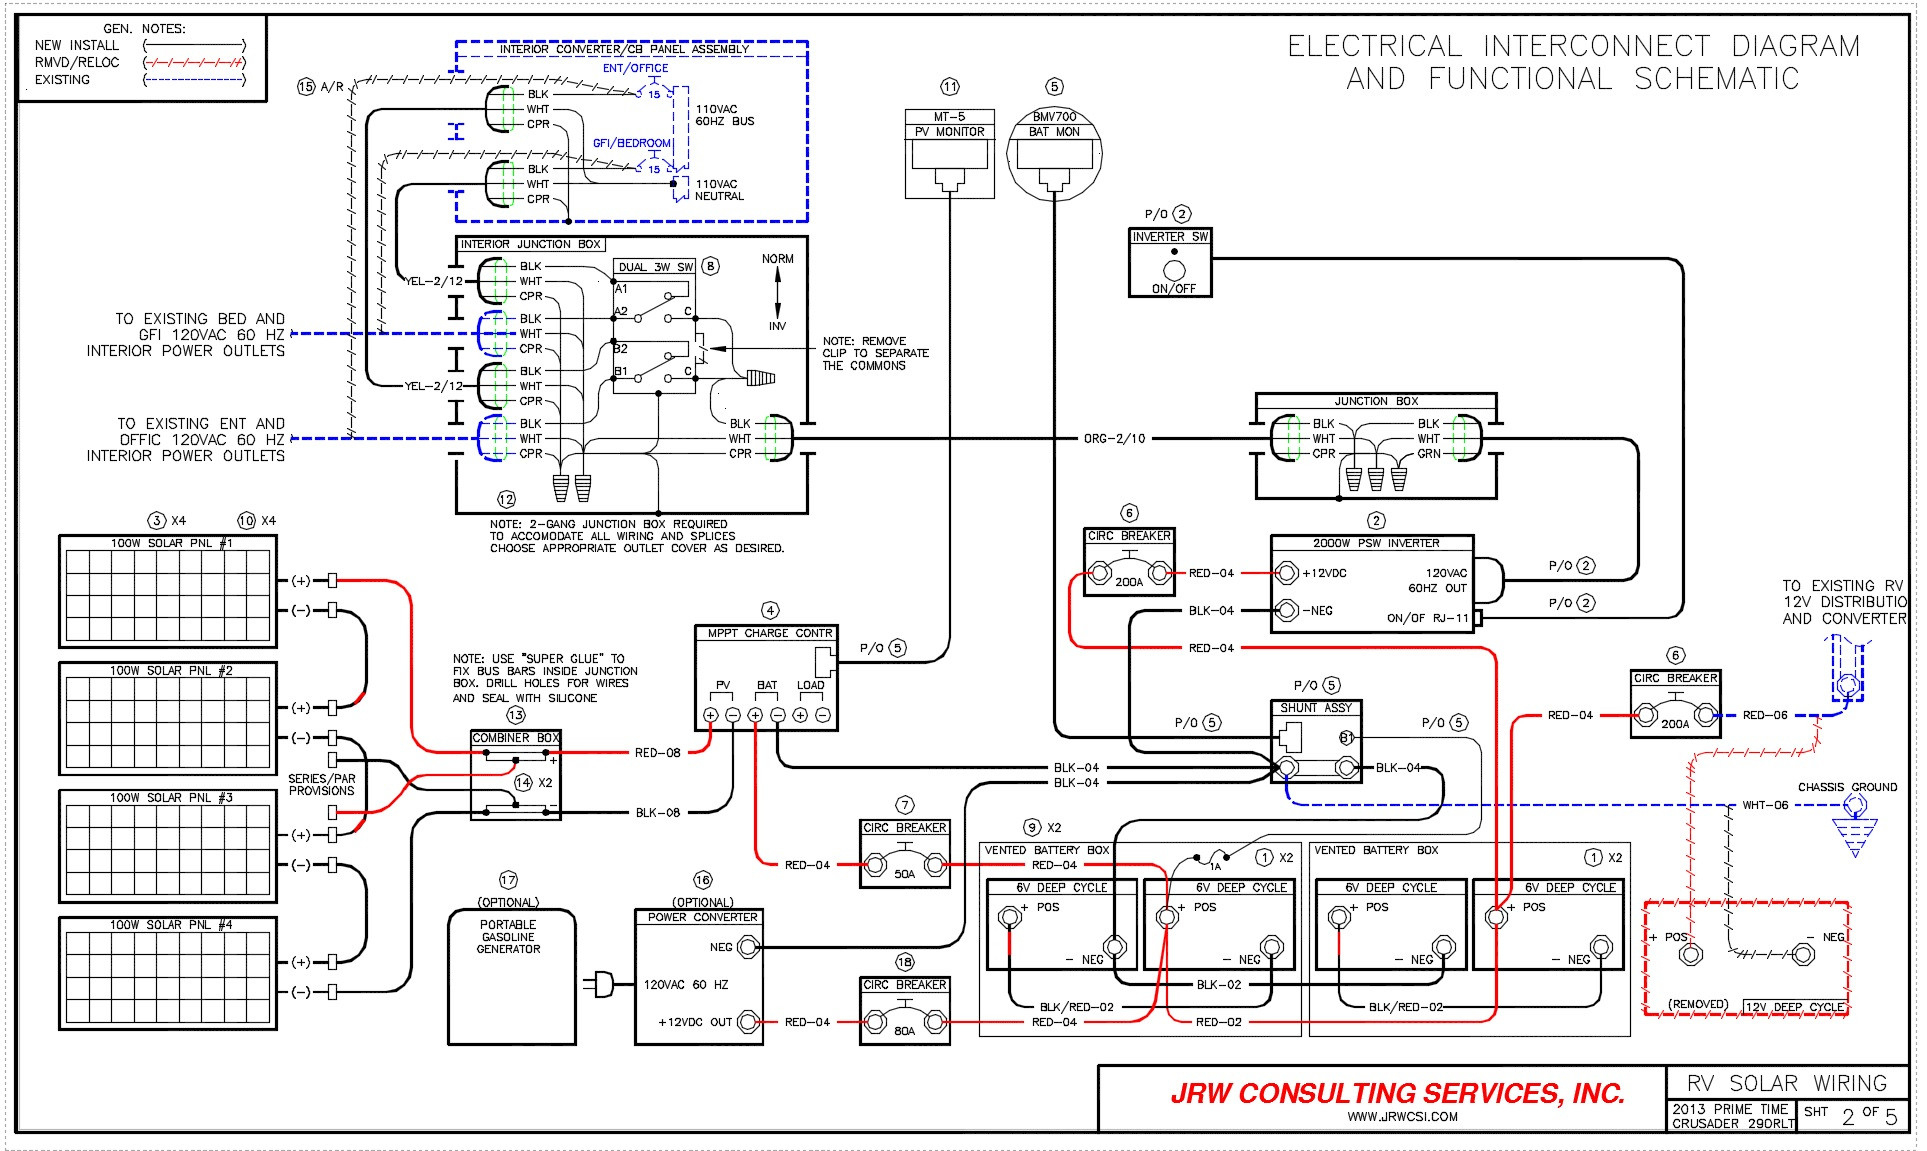 Battery Master Switch Wiring Diagram - Pickenscountymedicalcenter - Battery Disconnect Switch Wiring Diagram